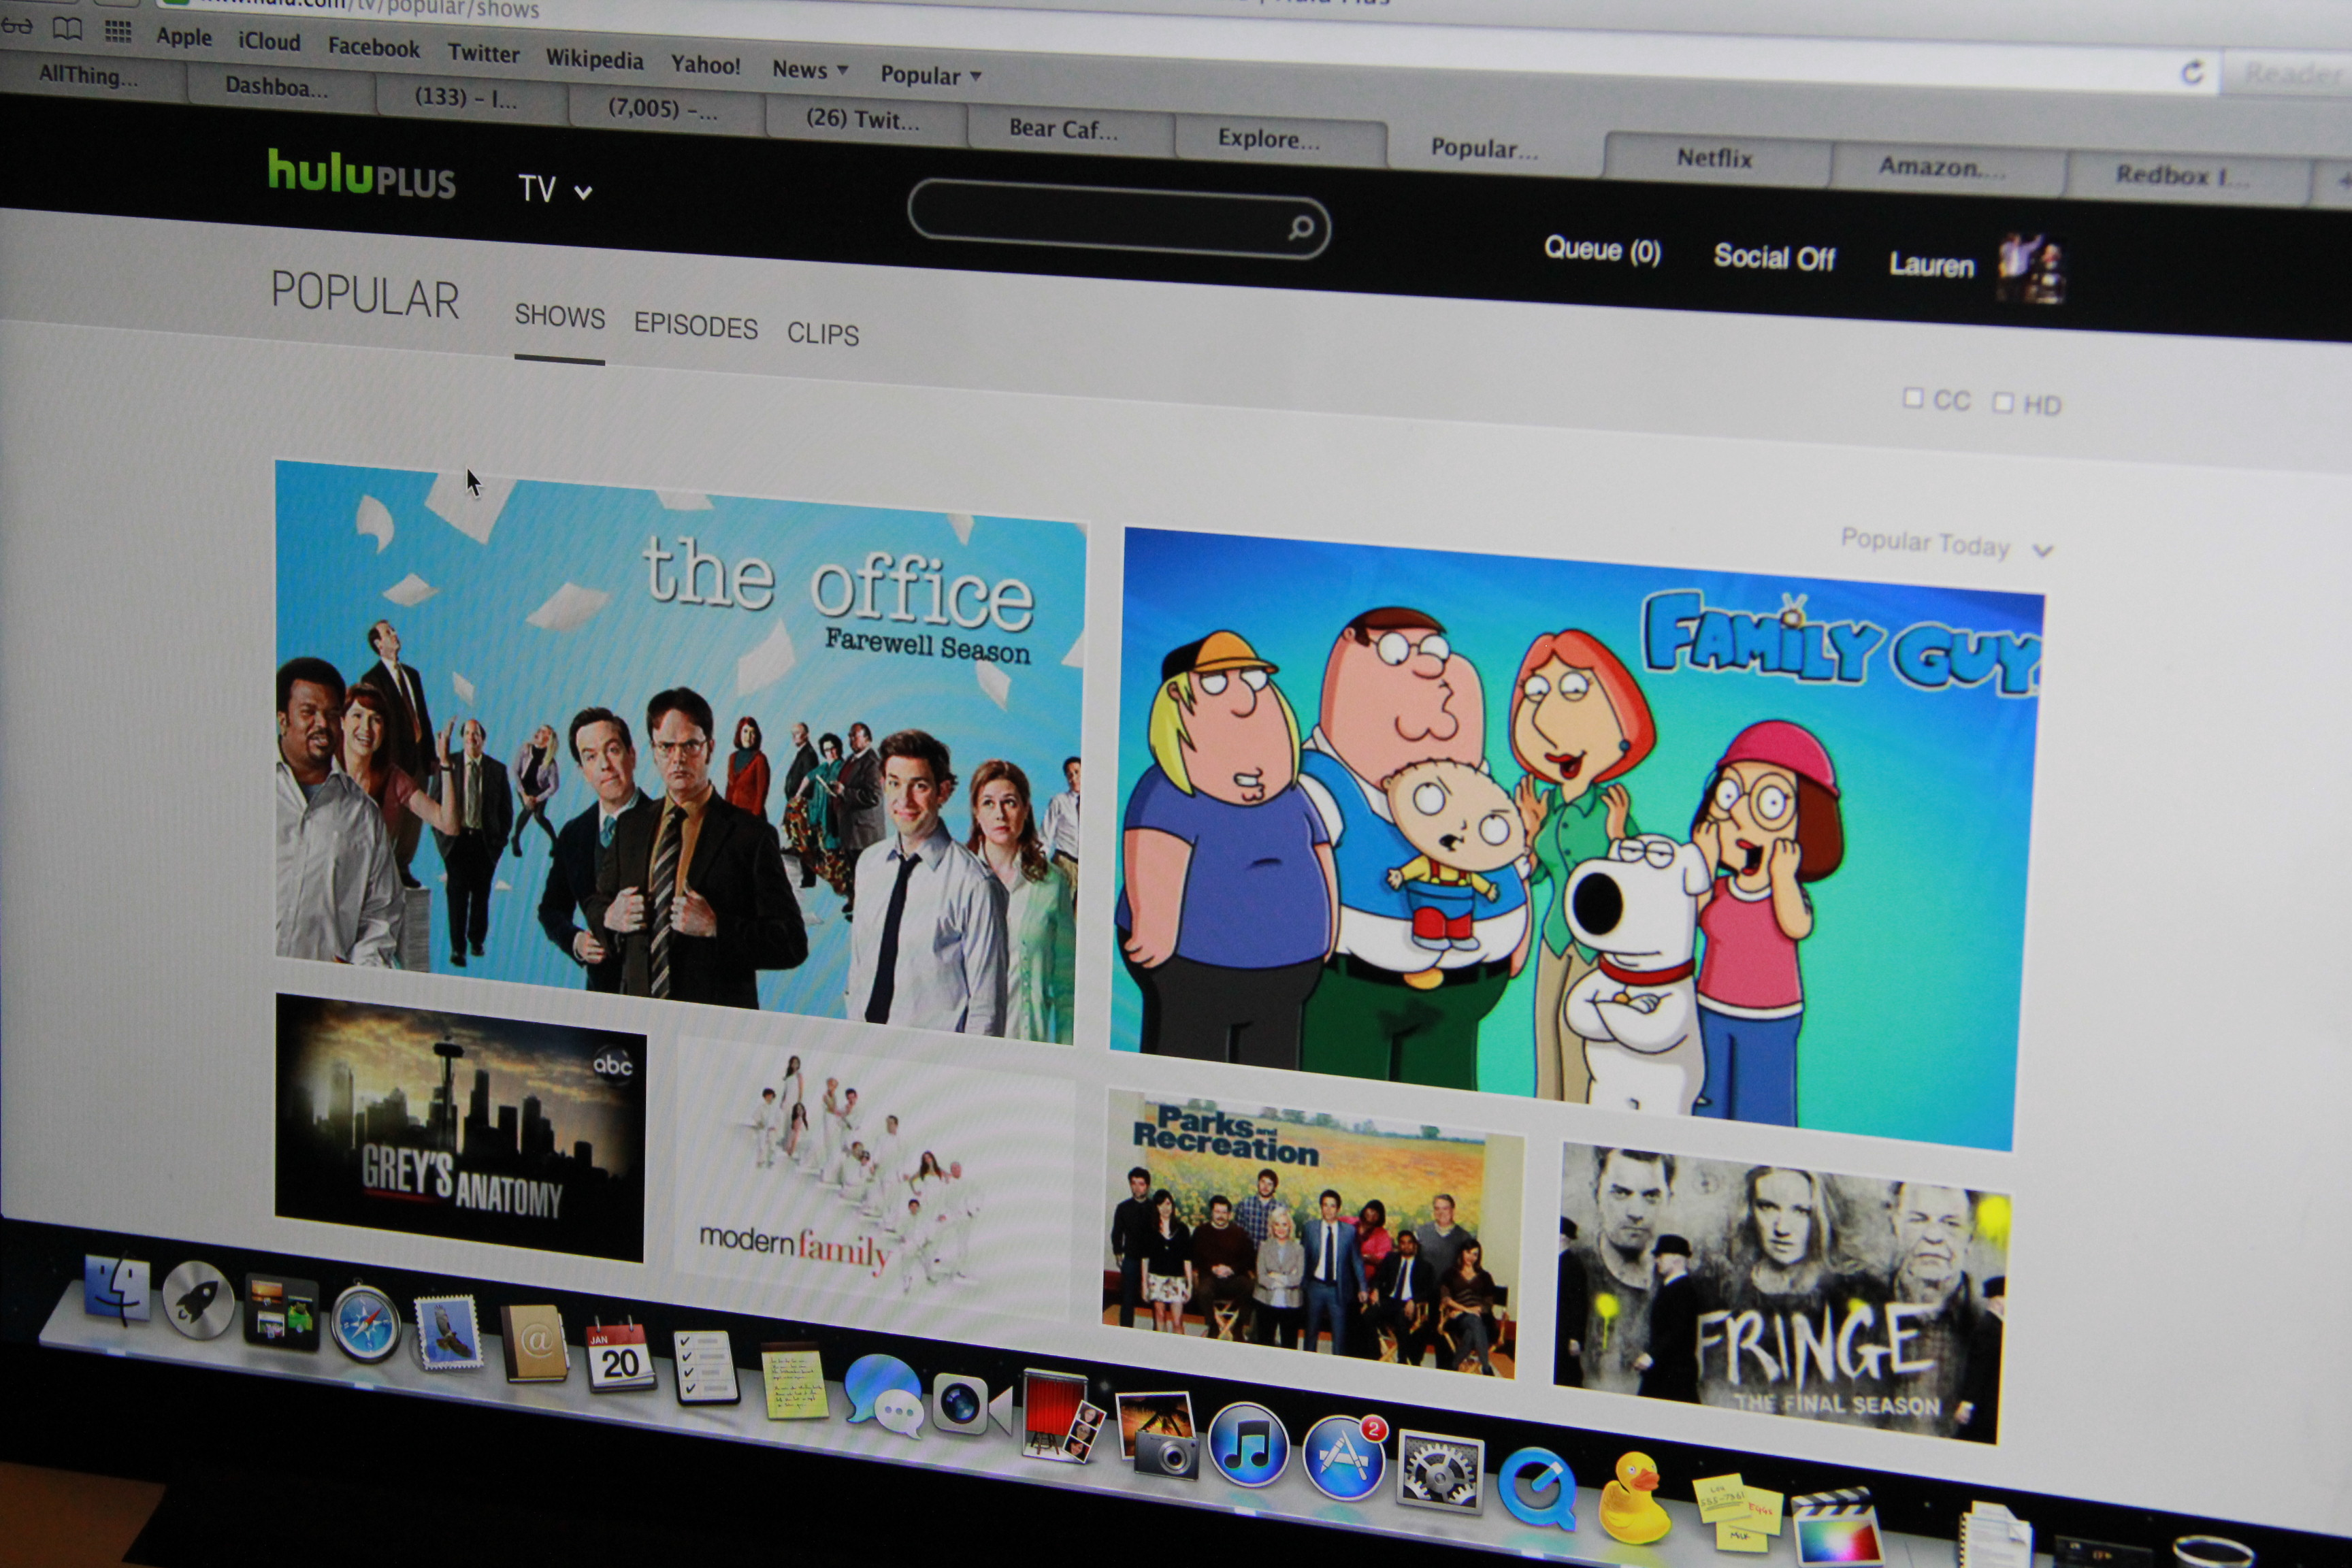 What You Need to Know About Netflix, Amazon Video and Redbox